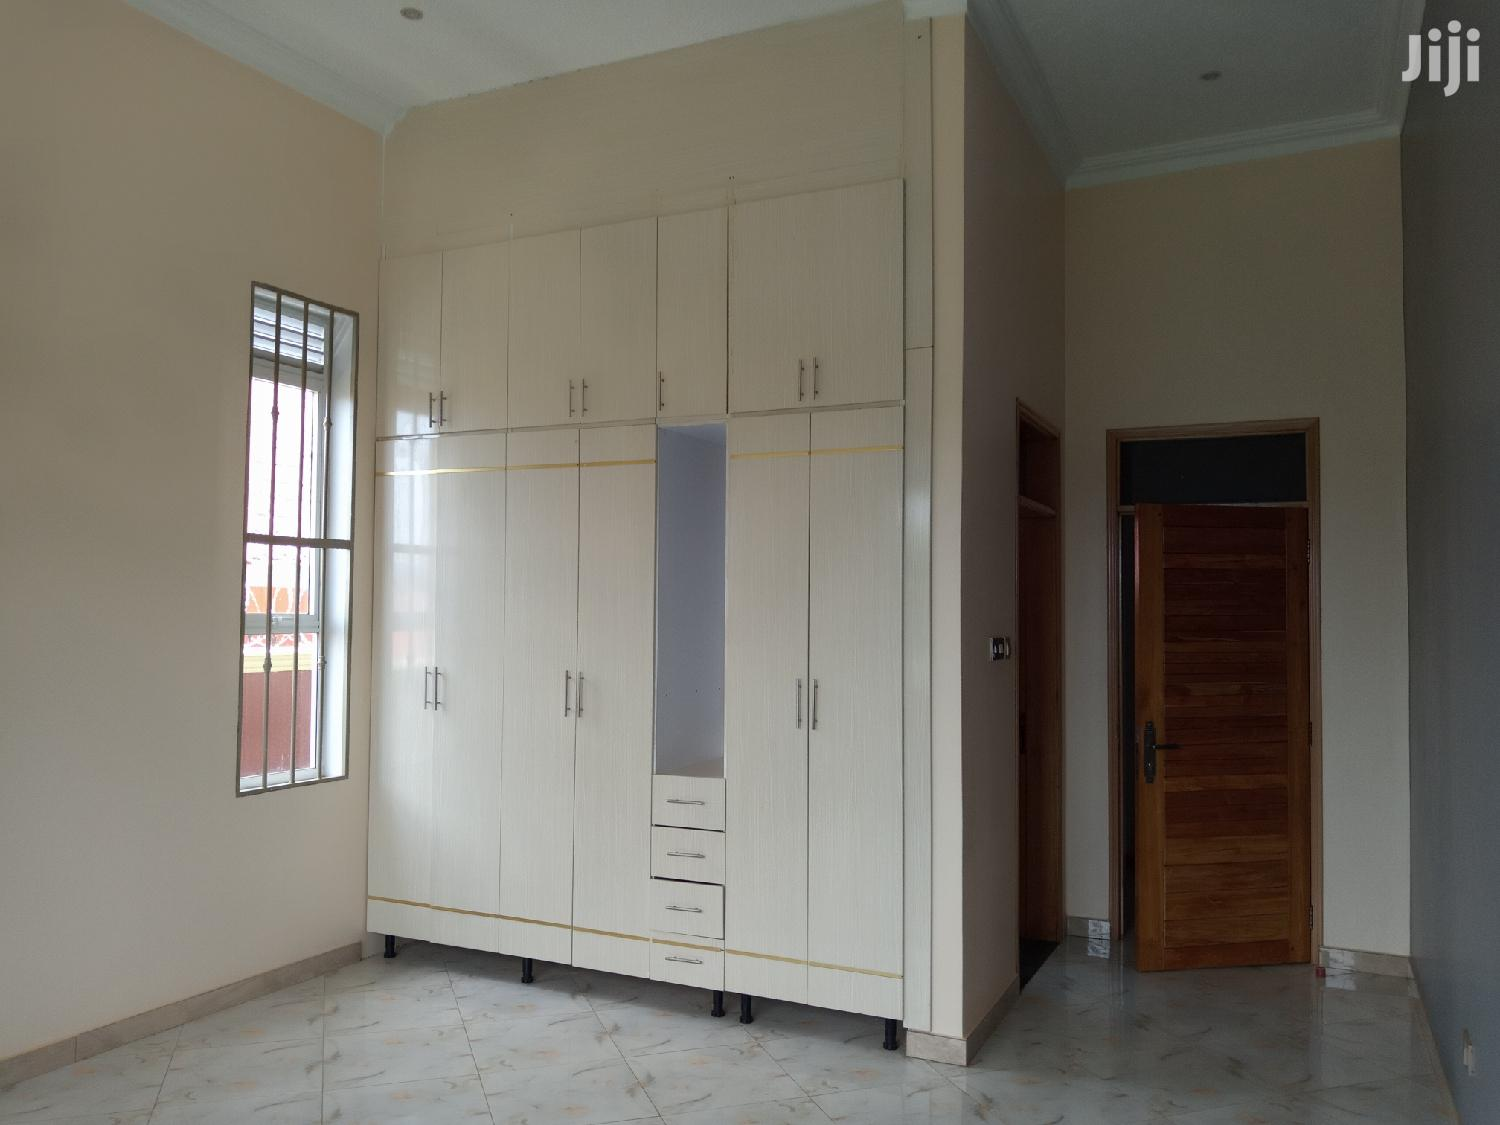 5 Star Home In Kira On Sale | Houses & Apartments For Sale for sale in Kampala, Central Region, Uganda